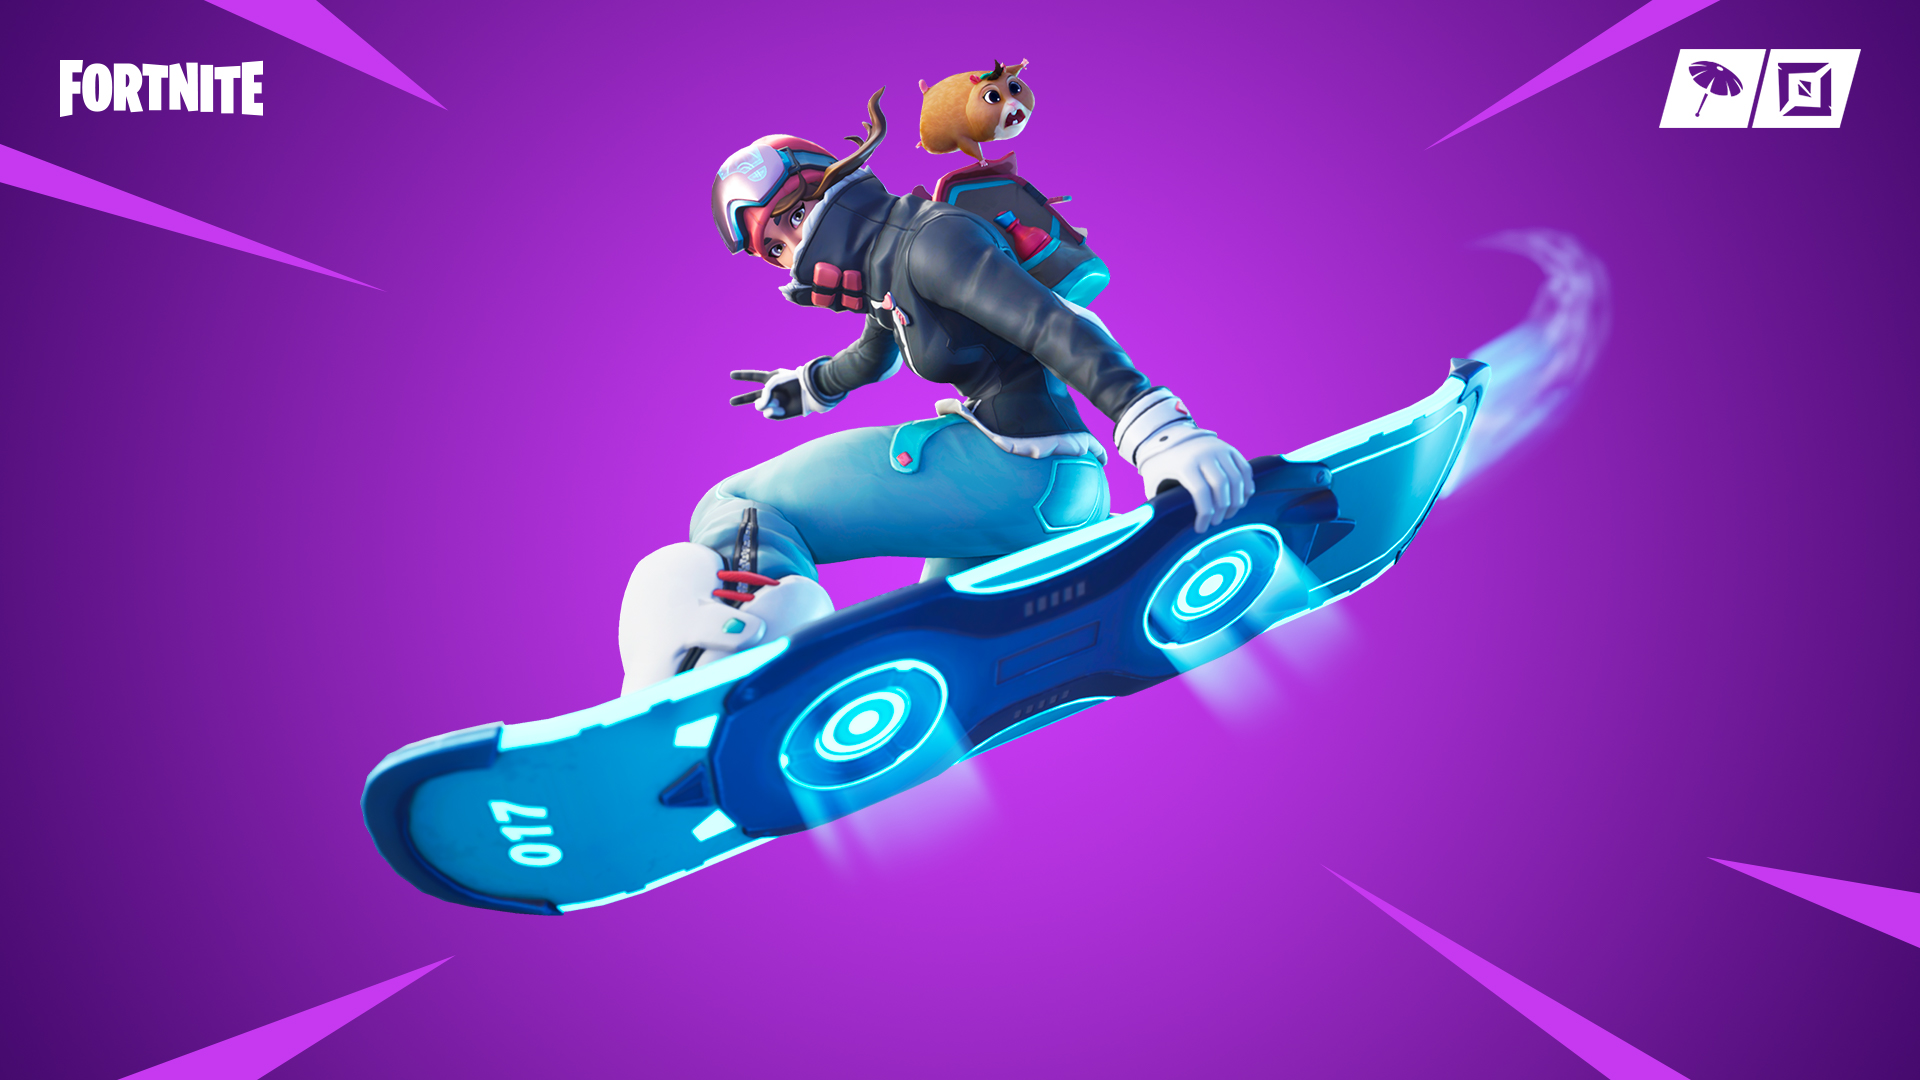 Fortnite Patch Notes images